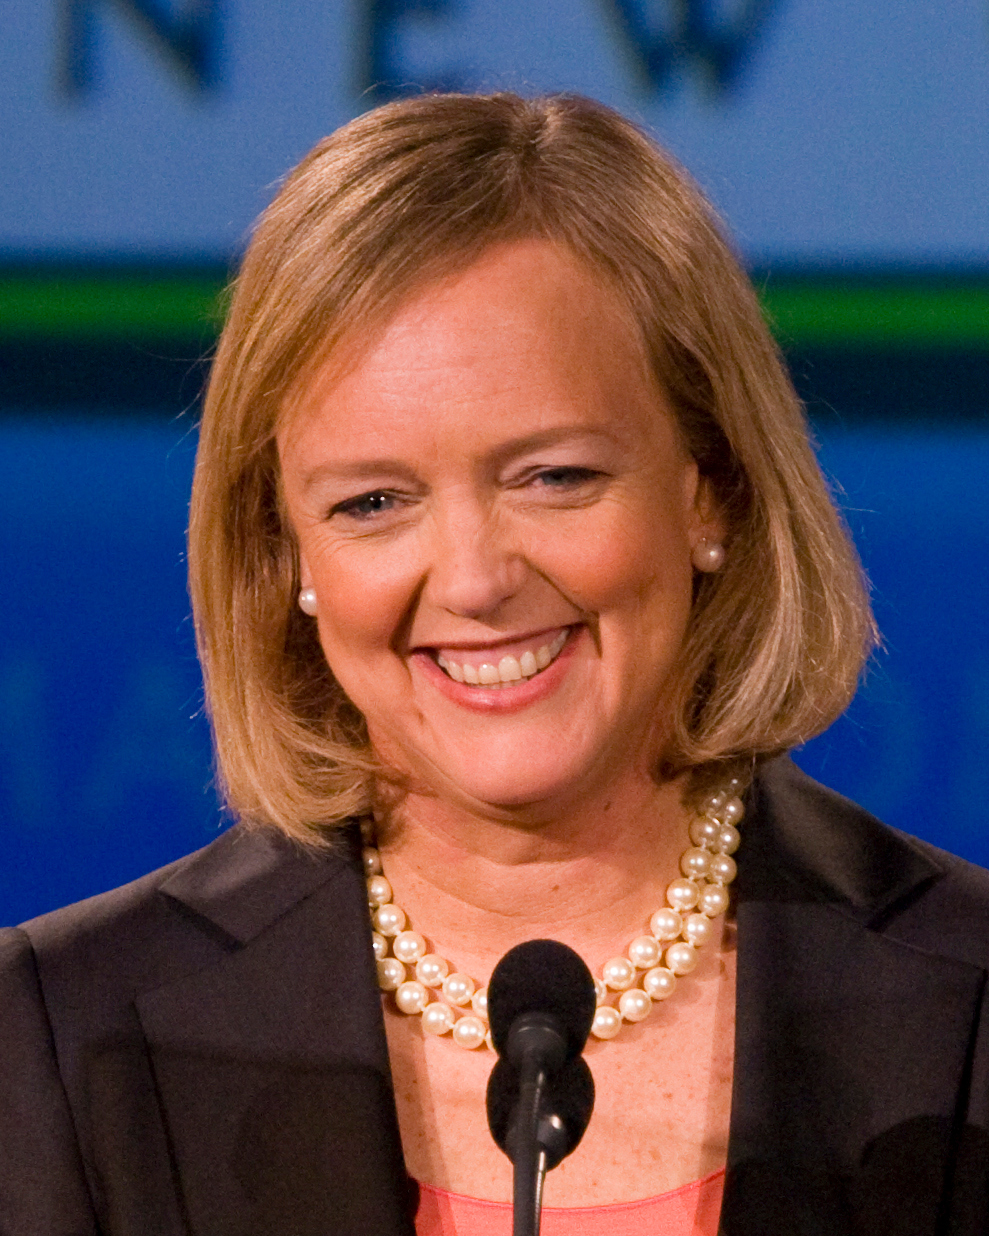 Meg Whitman, CEO of HPE